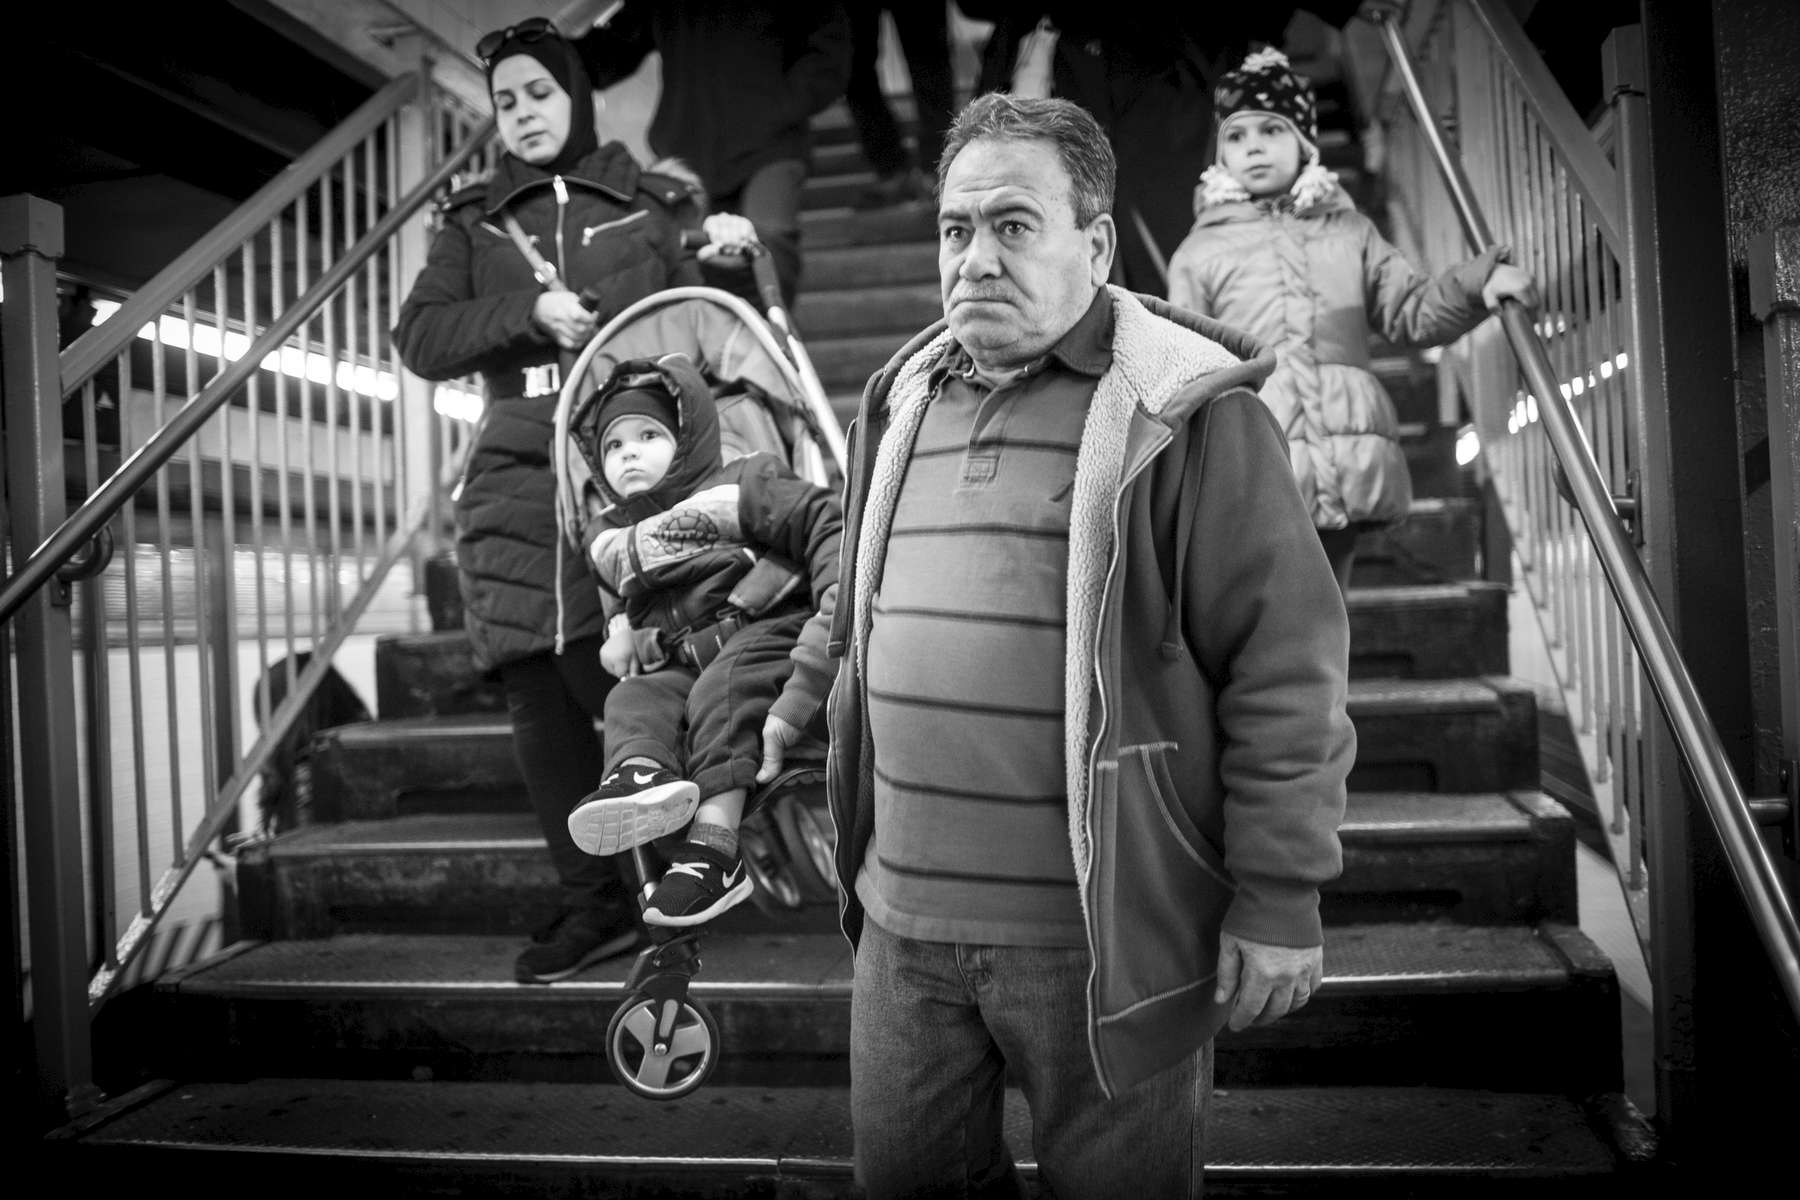 Hassan Ferdous carries his grandson, also named Hassan, with Eman as they travel to Downtown Brooklyn to go shopping and visit the Brooklyn Heights Promenade. Michael Appleton/Mayoral Photography Office